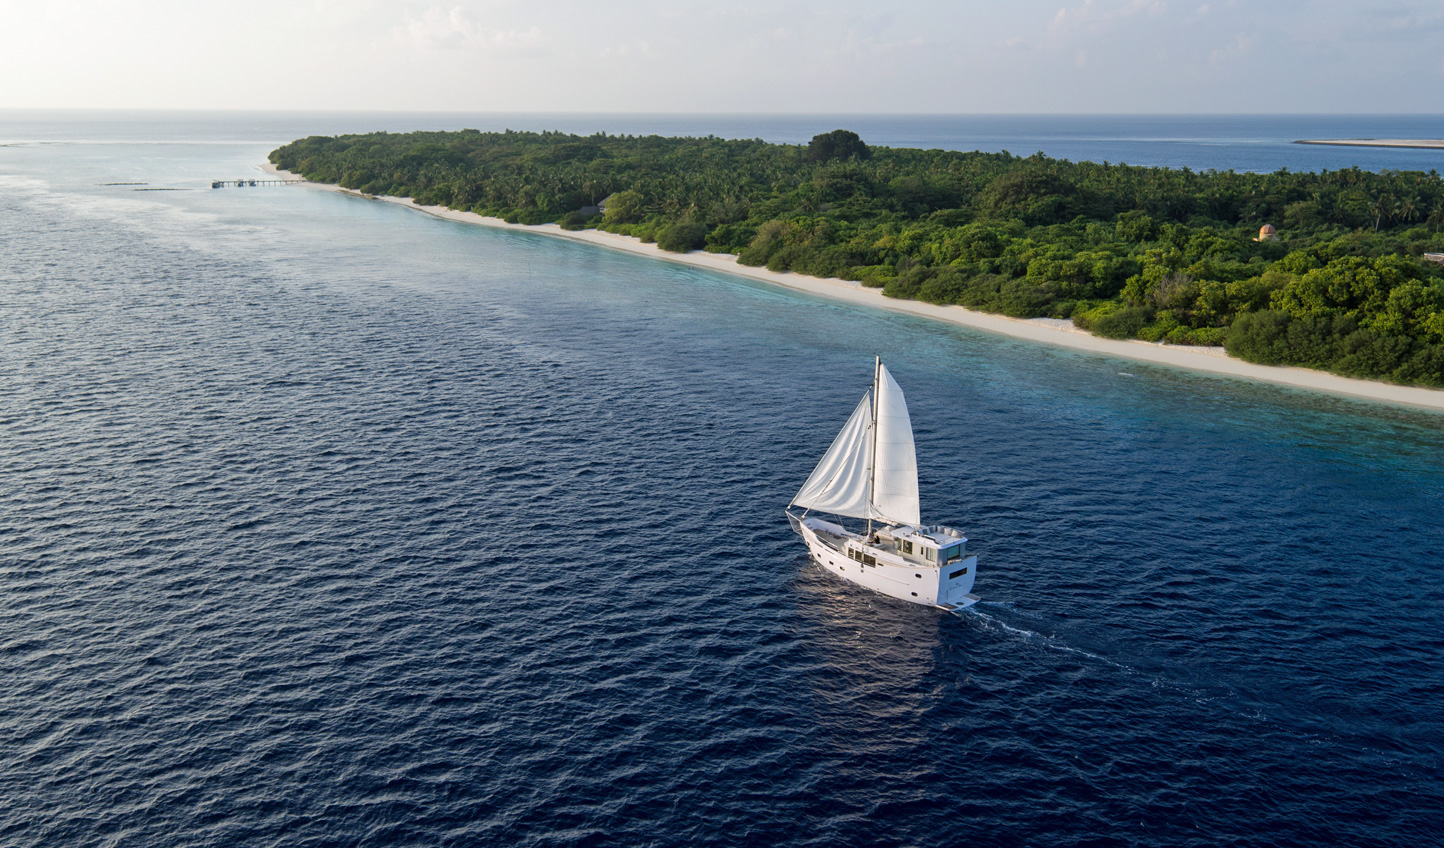 Sail between the atolls